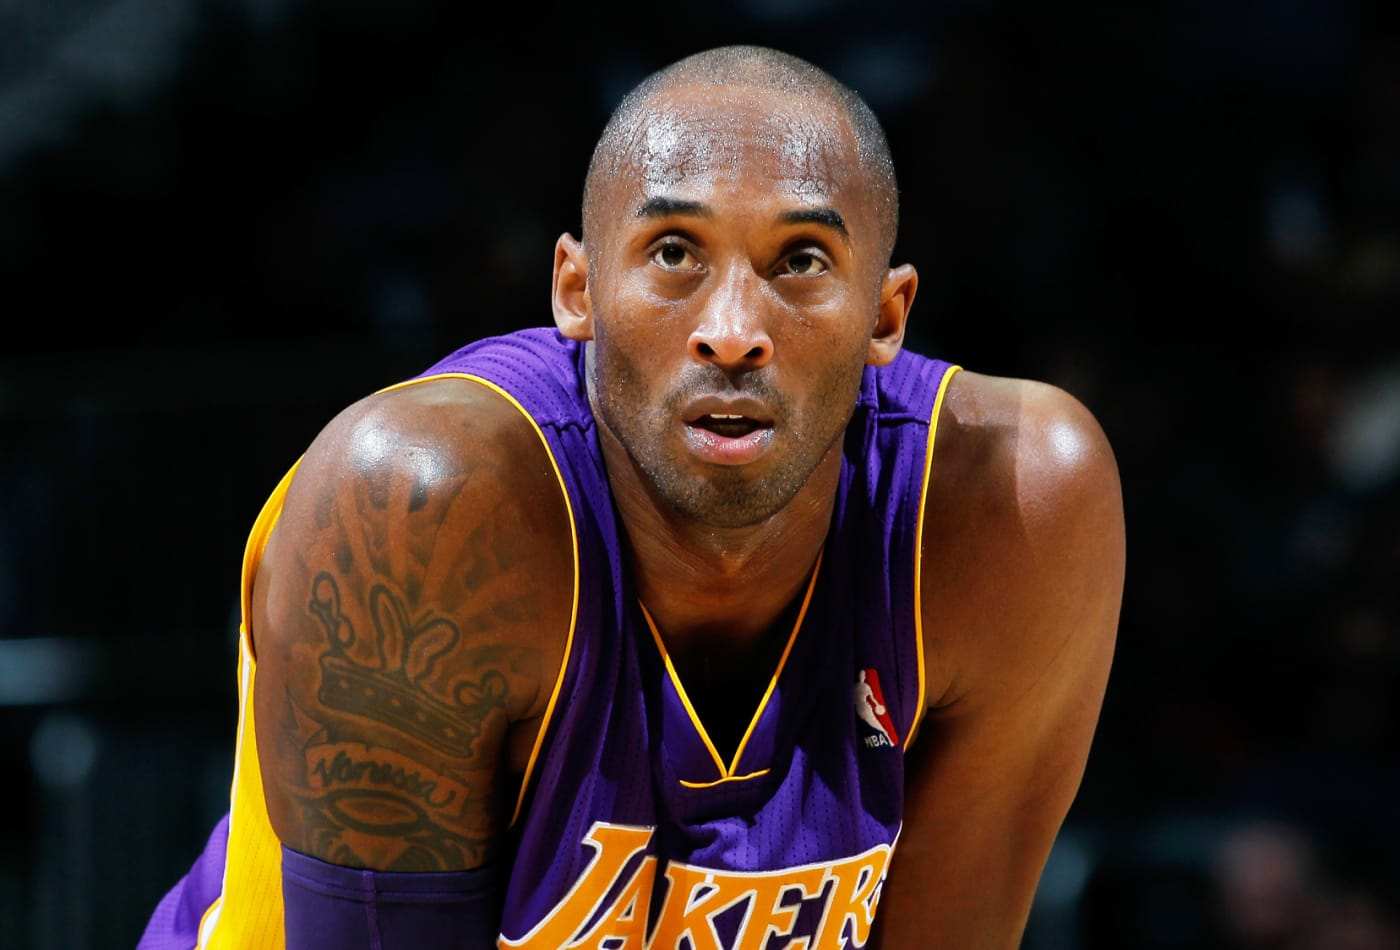 Kobe Bryant was travelling in a private helicopter when it burst into flames killing the basketball superstar.